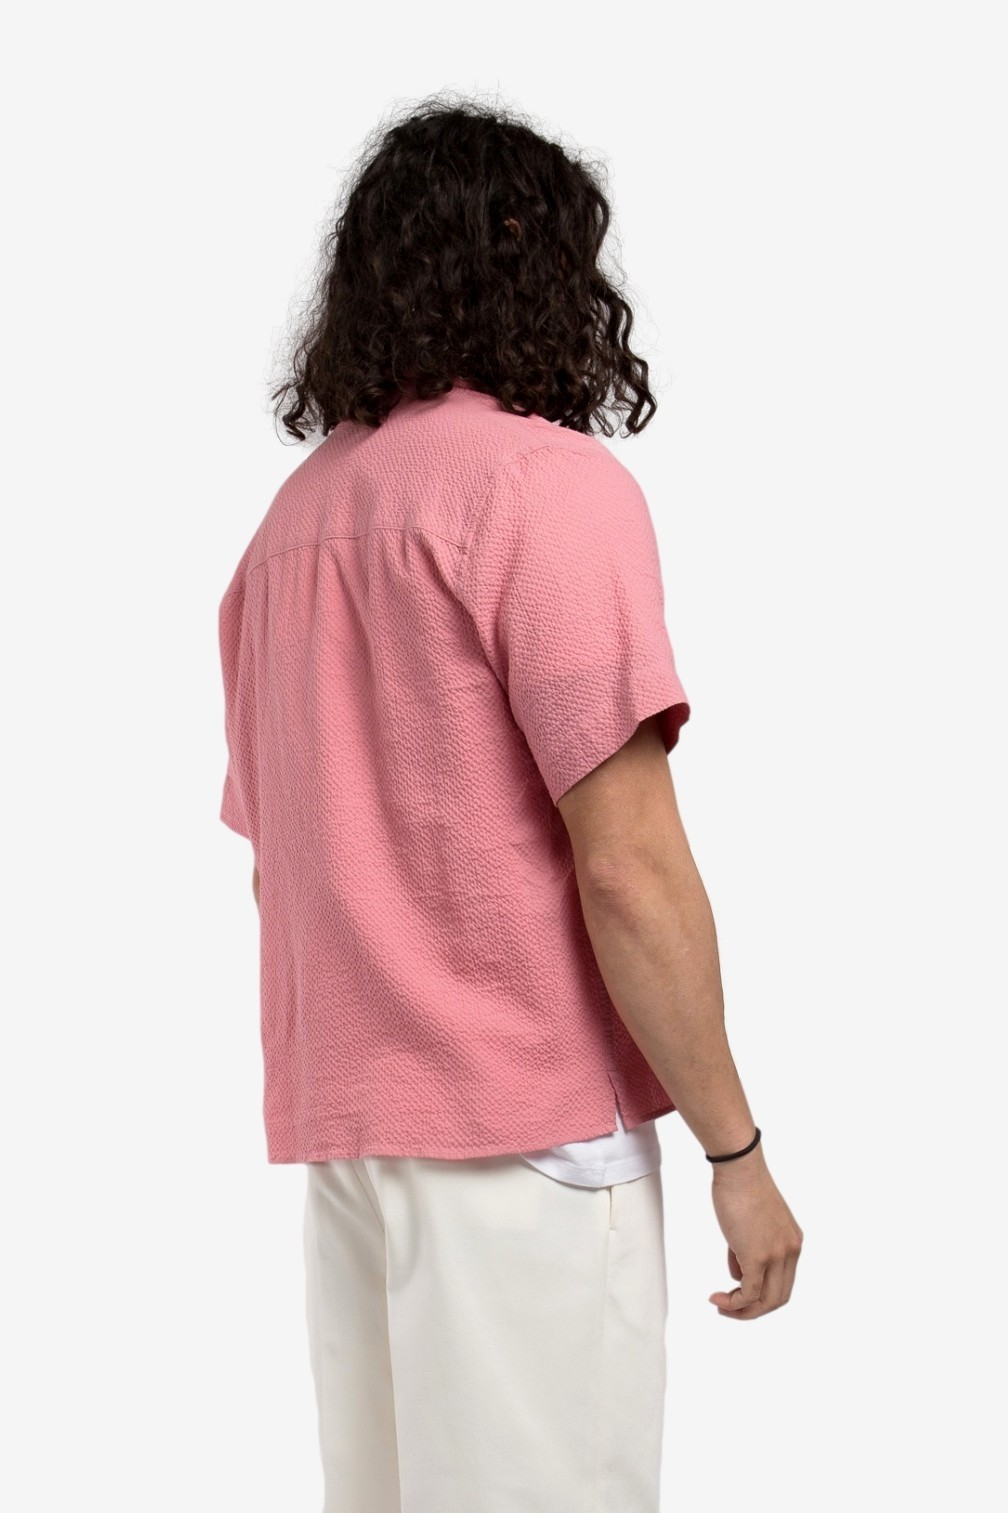 A Kind of Guise Gioia Shirt in Berry Sorbet